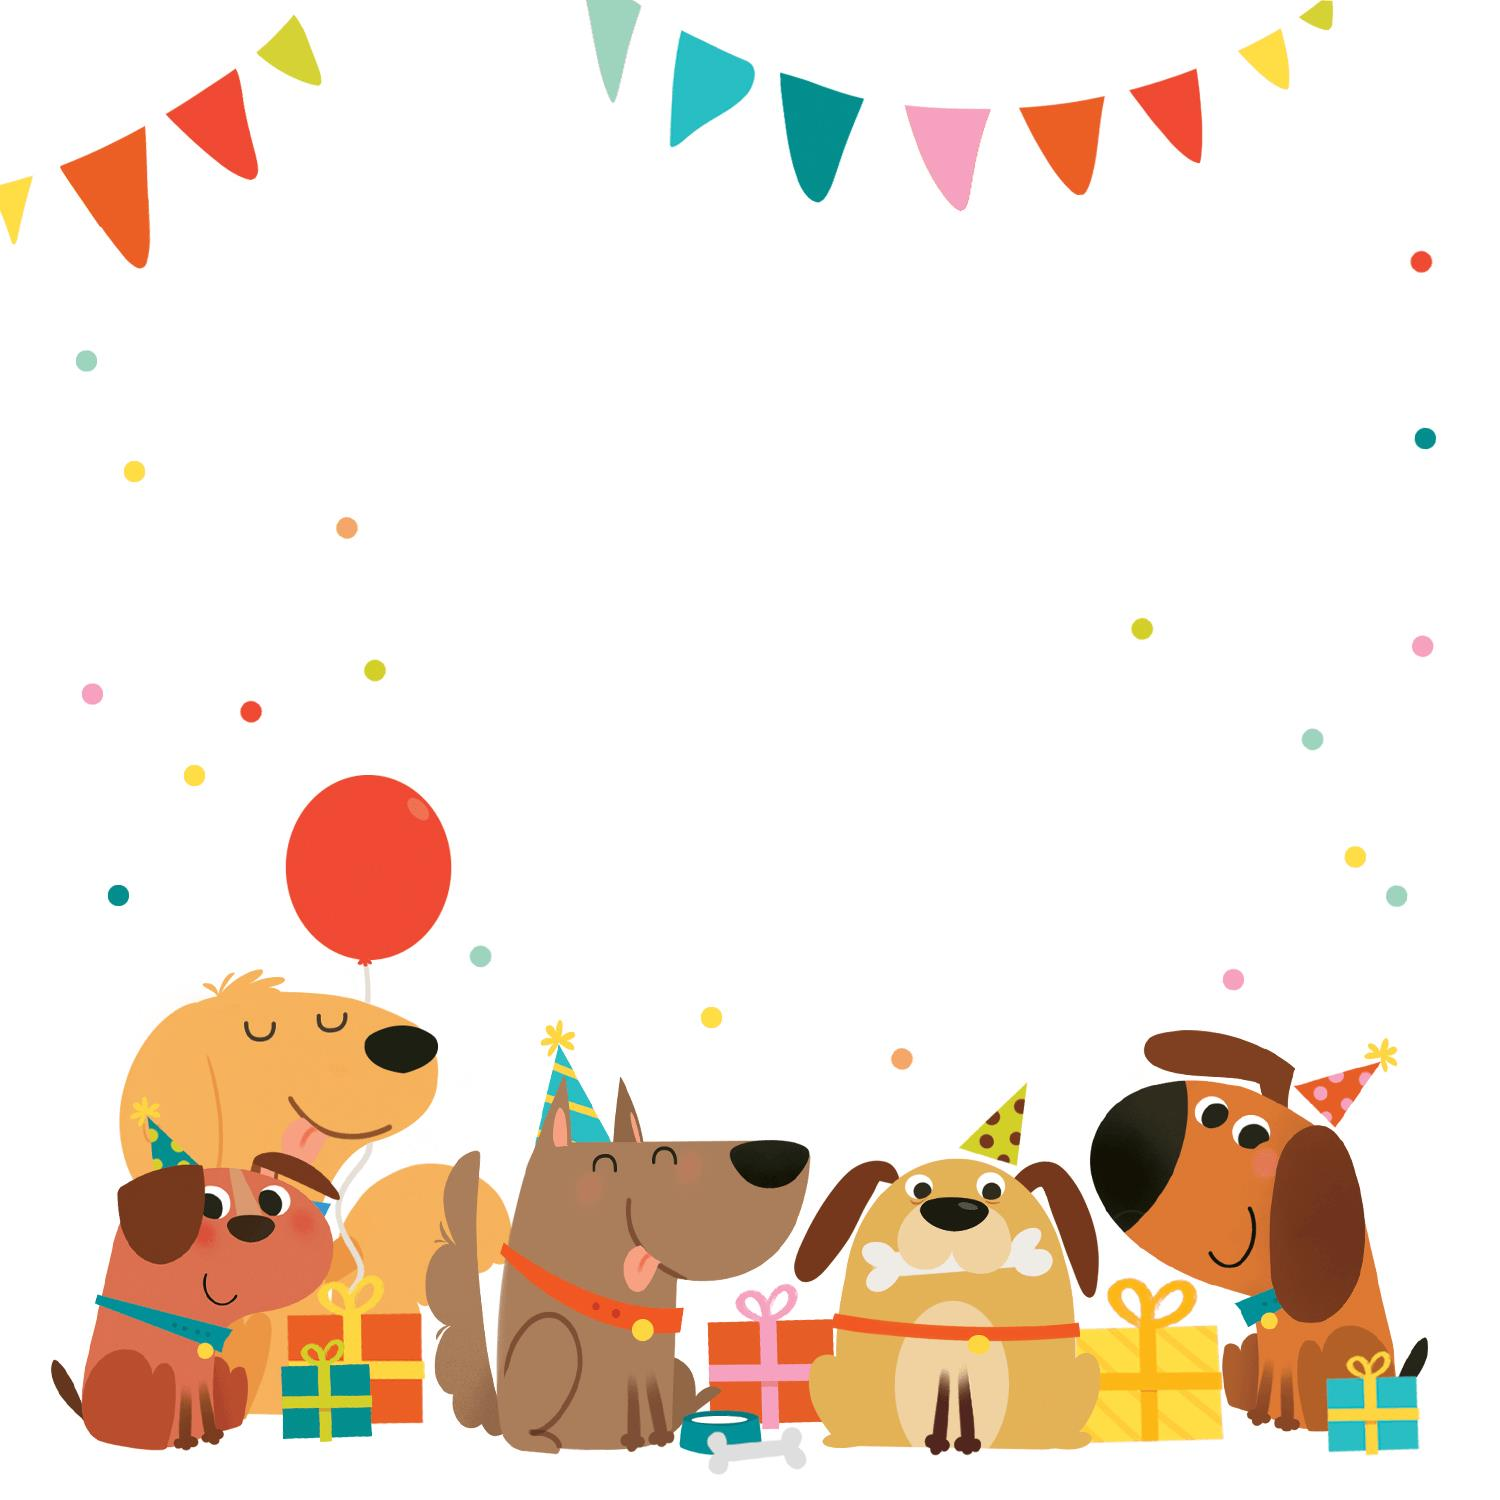 dog birthday invitations free printable ; 8e41230b82da7219ecf69d9f7ac0cd08